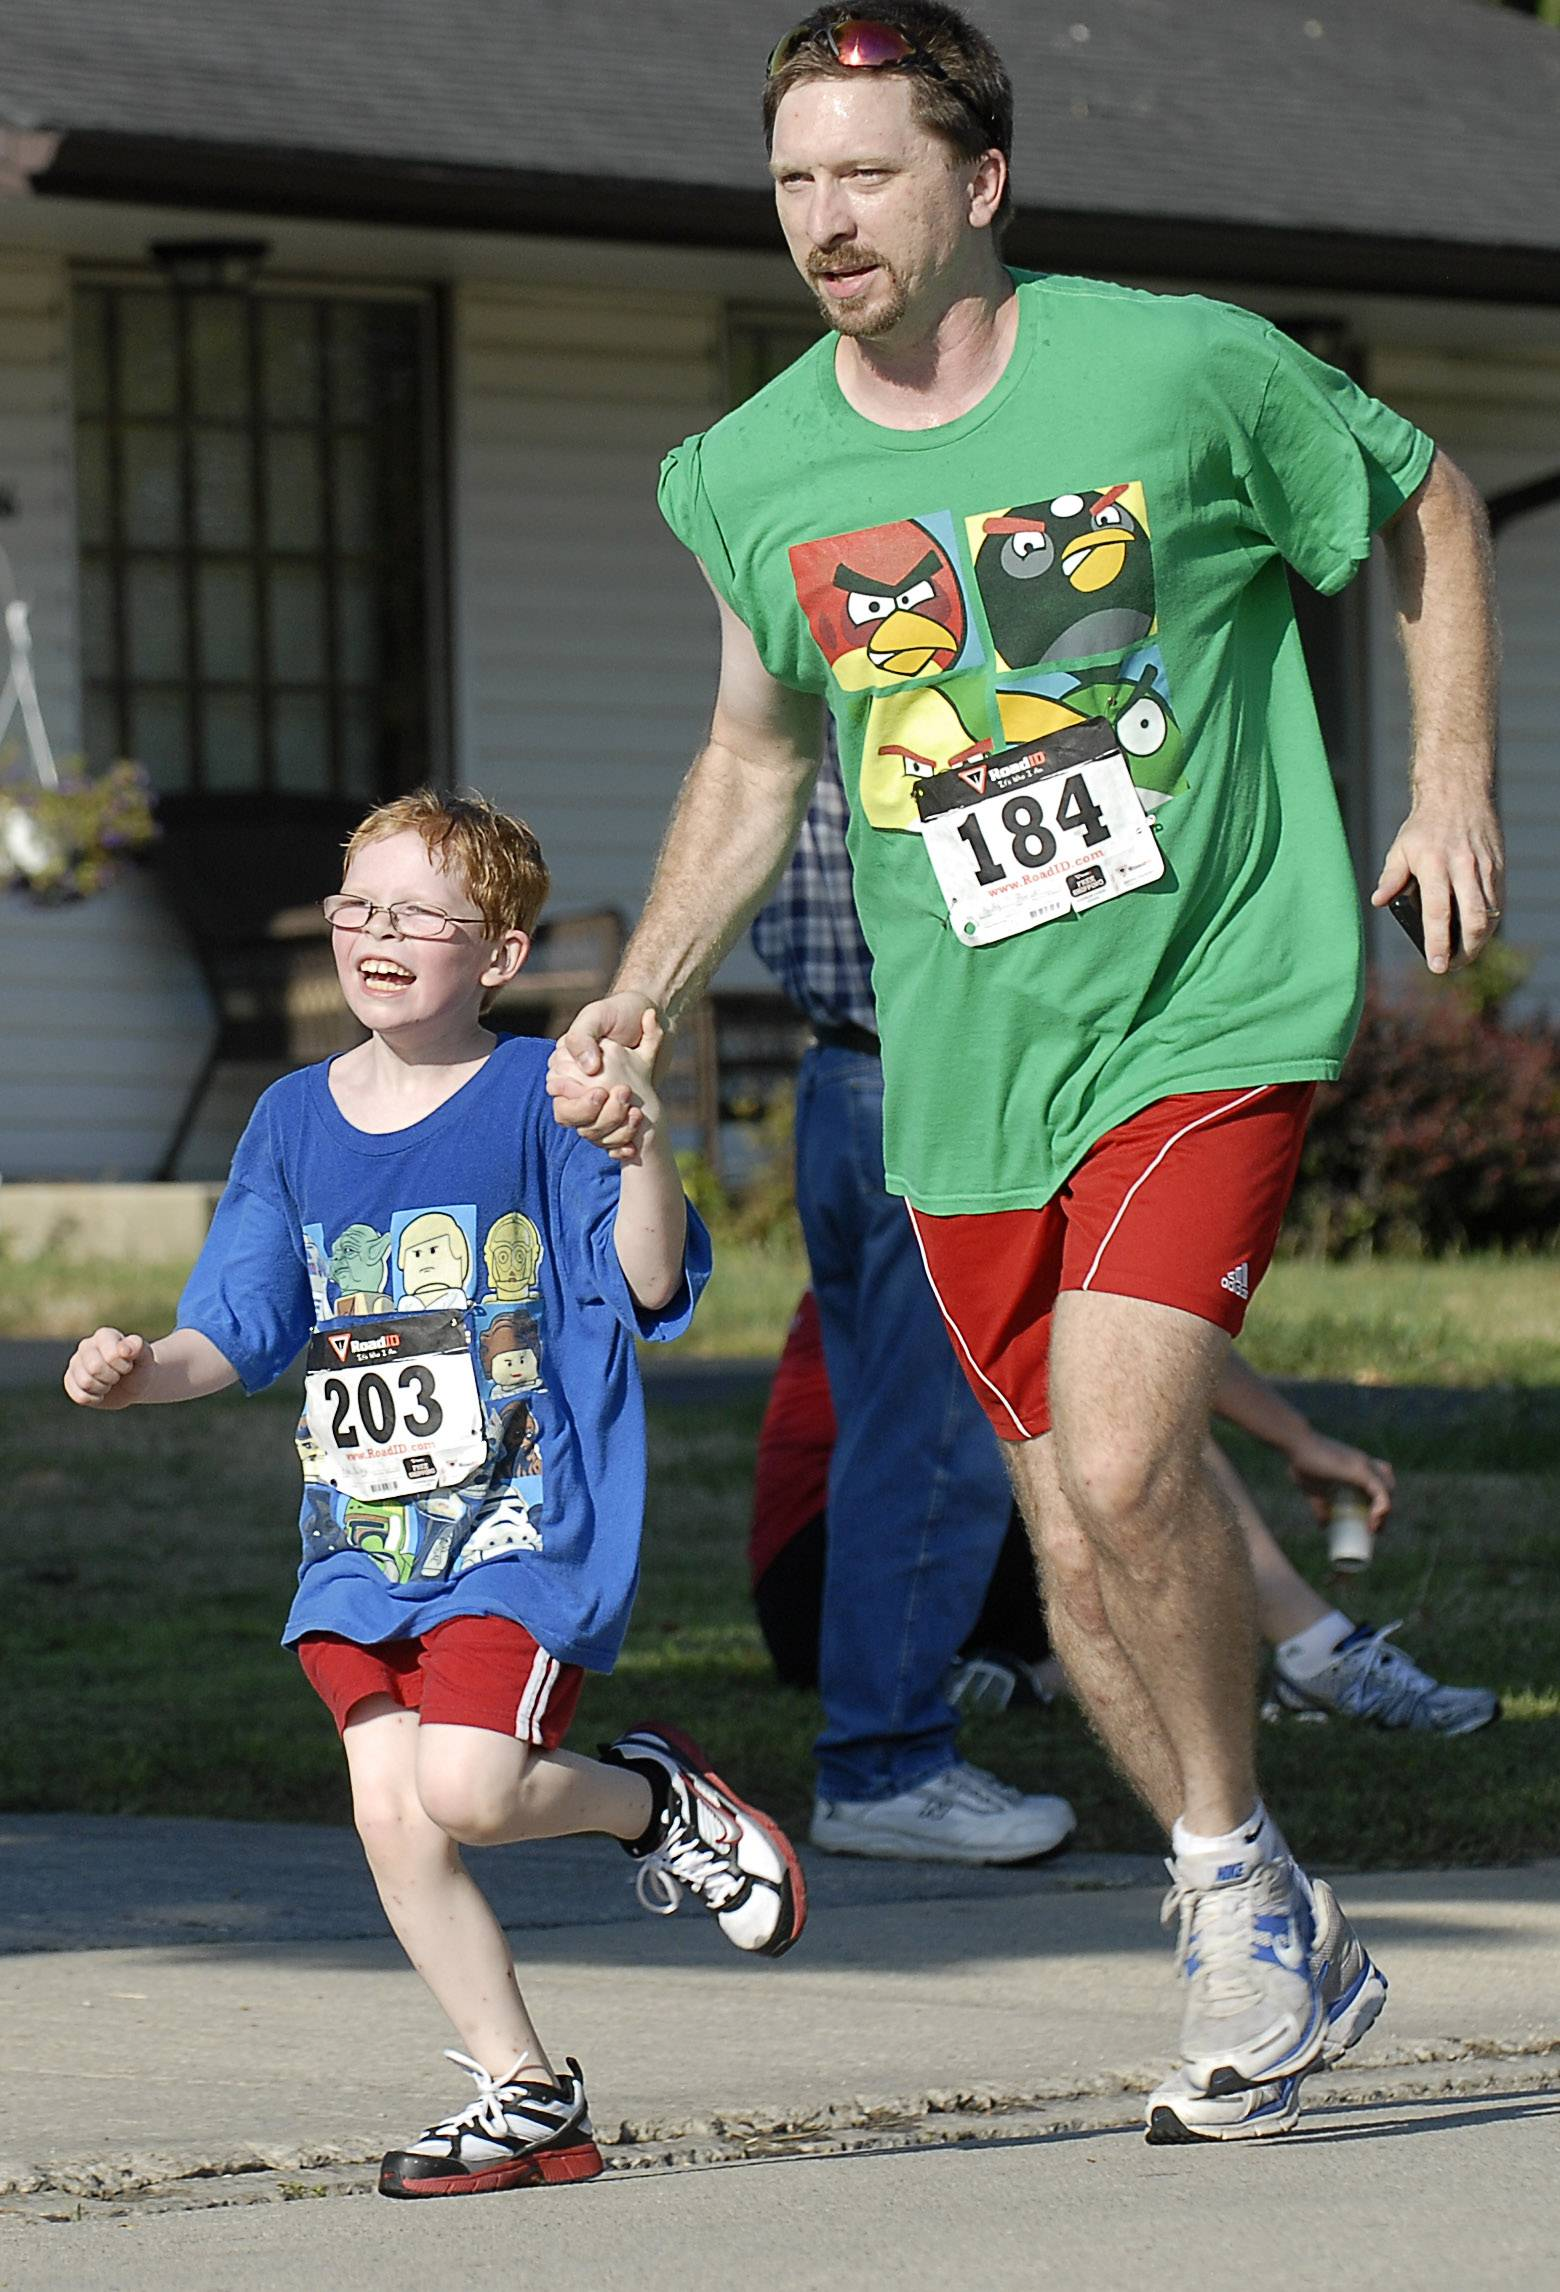 Aiden Bailey, 7, and his father, Patrick, both of Sugar Grove, join hands to cross the finish line in a previous Sugar Grove Corn Boil 5K Run/Walk.